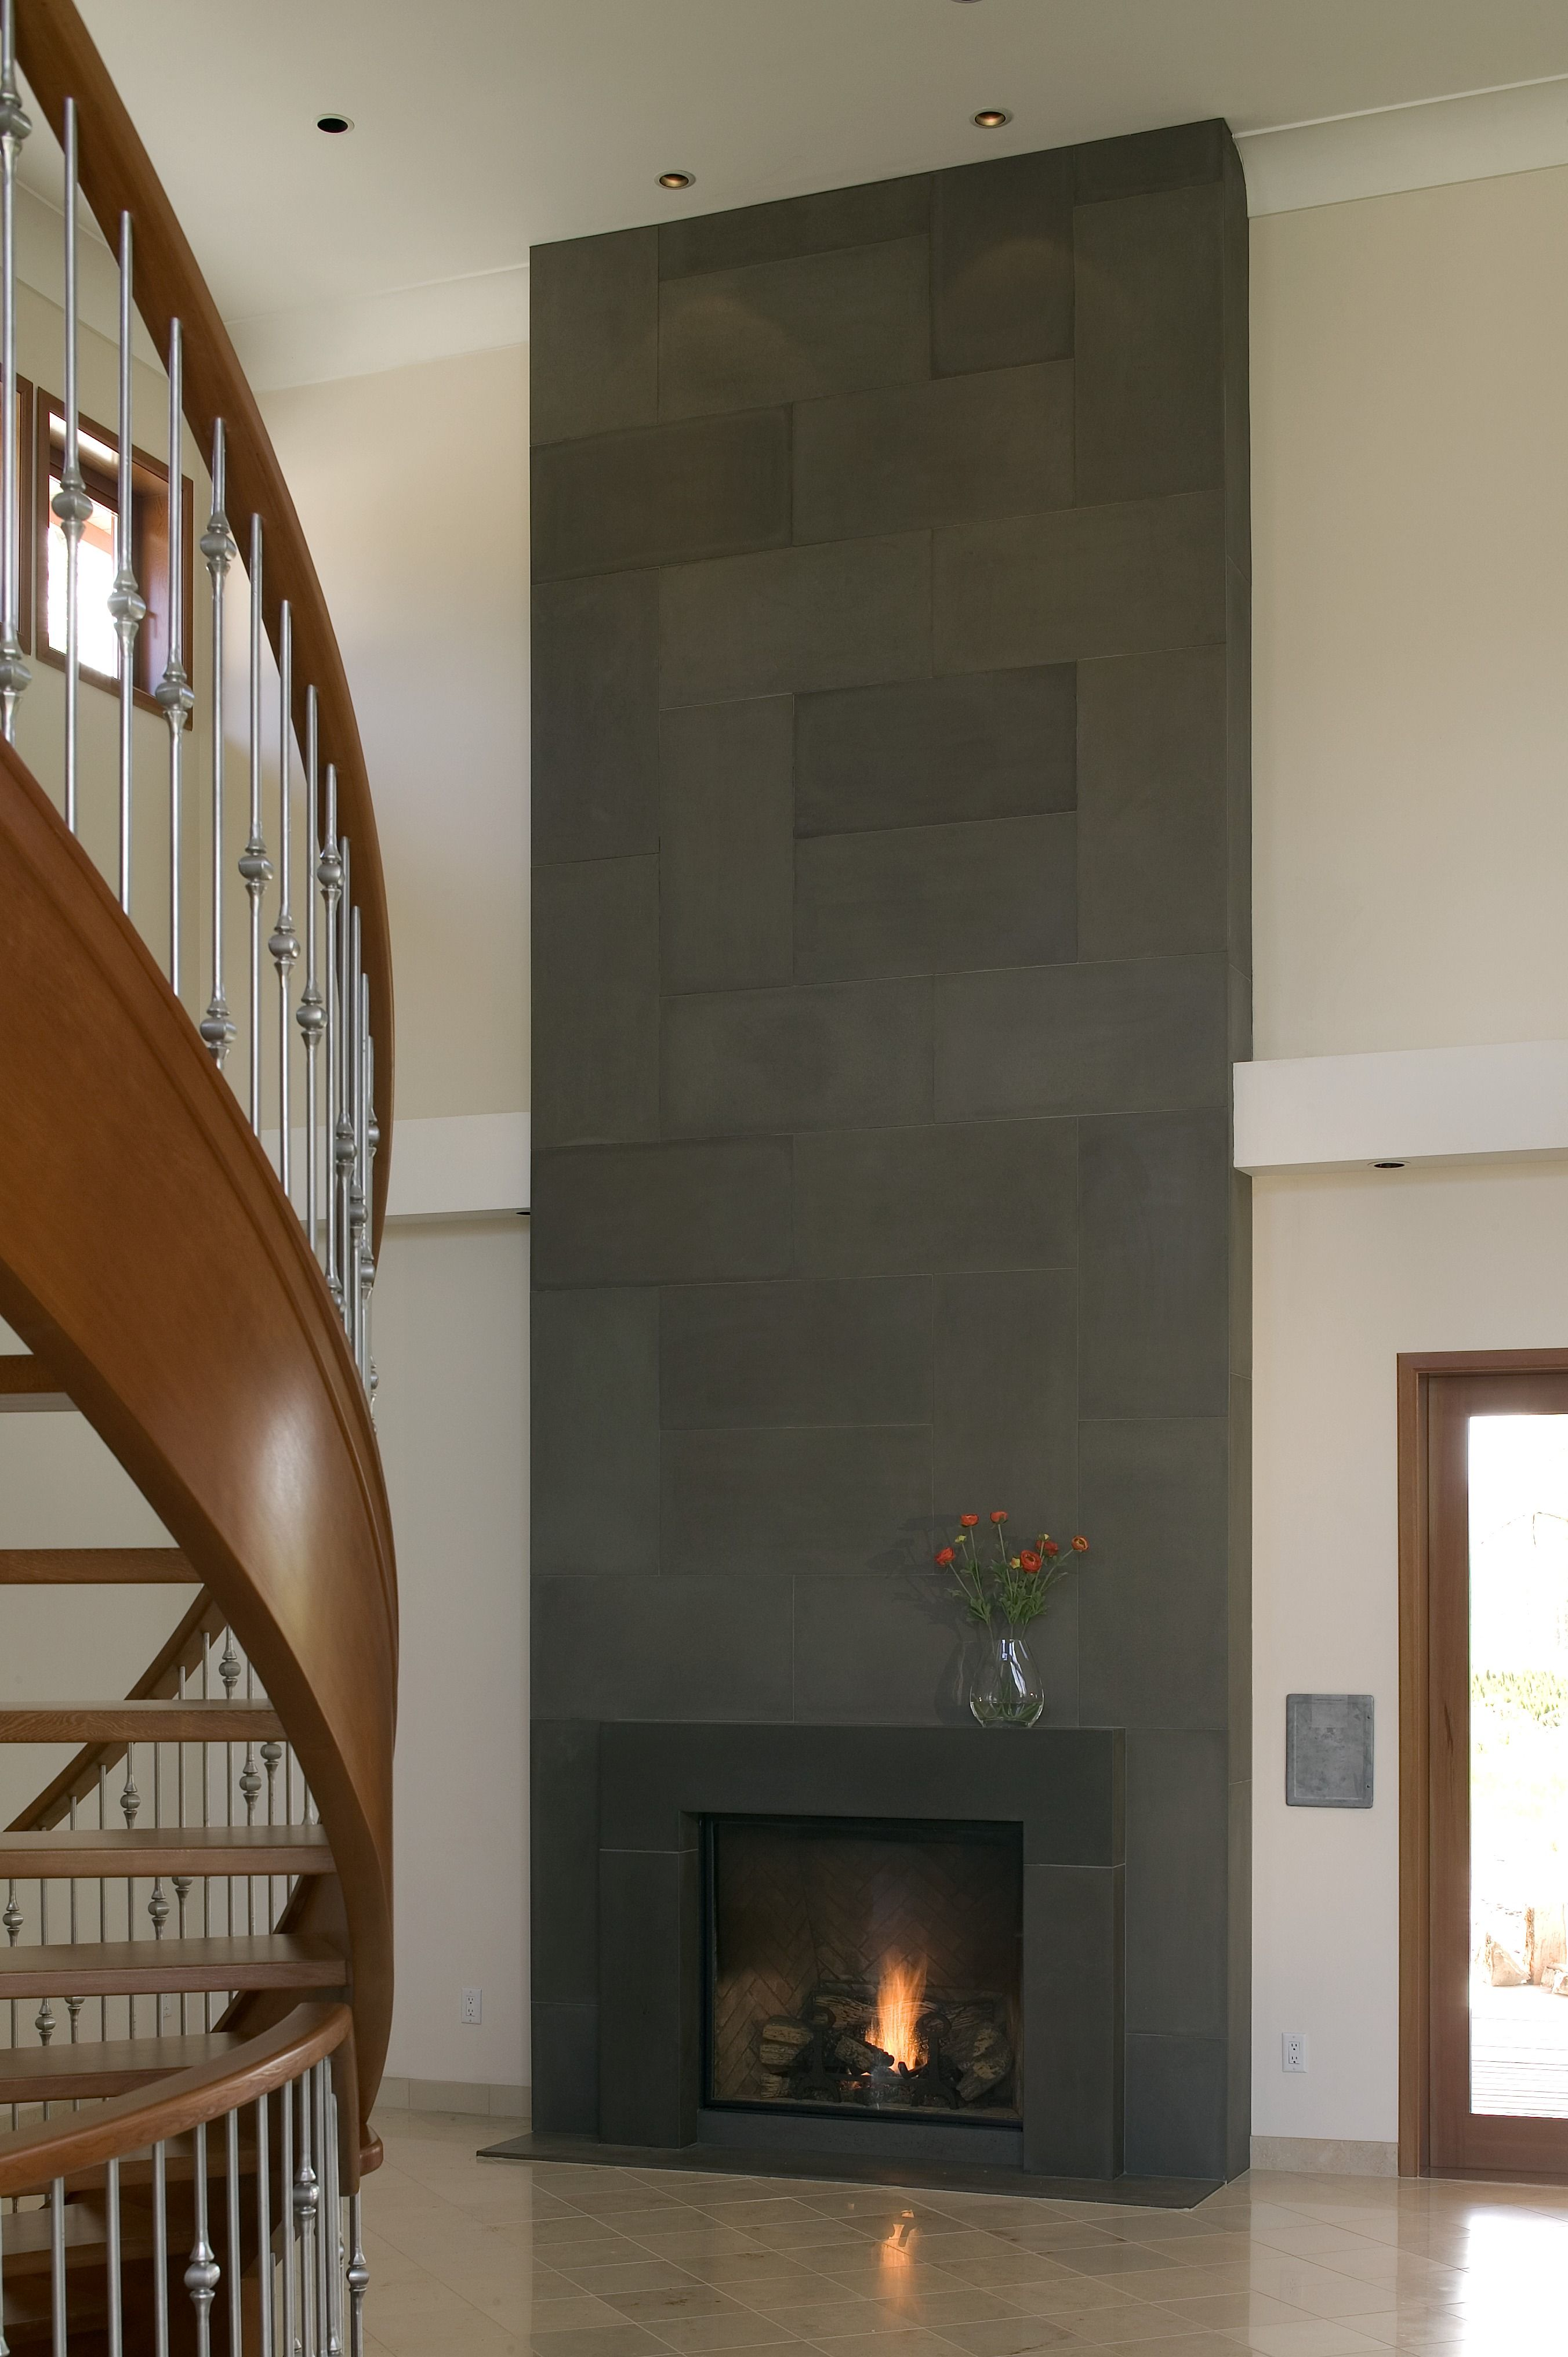 How Much Does New Flooring Cost? Modern fireplace